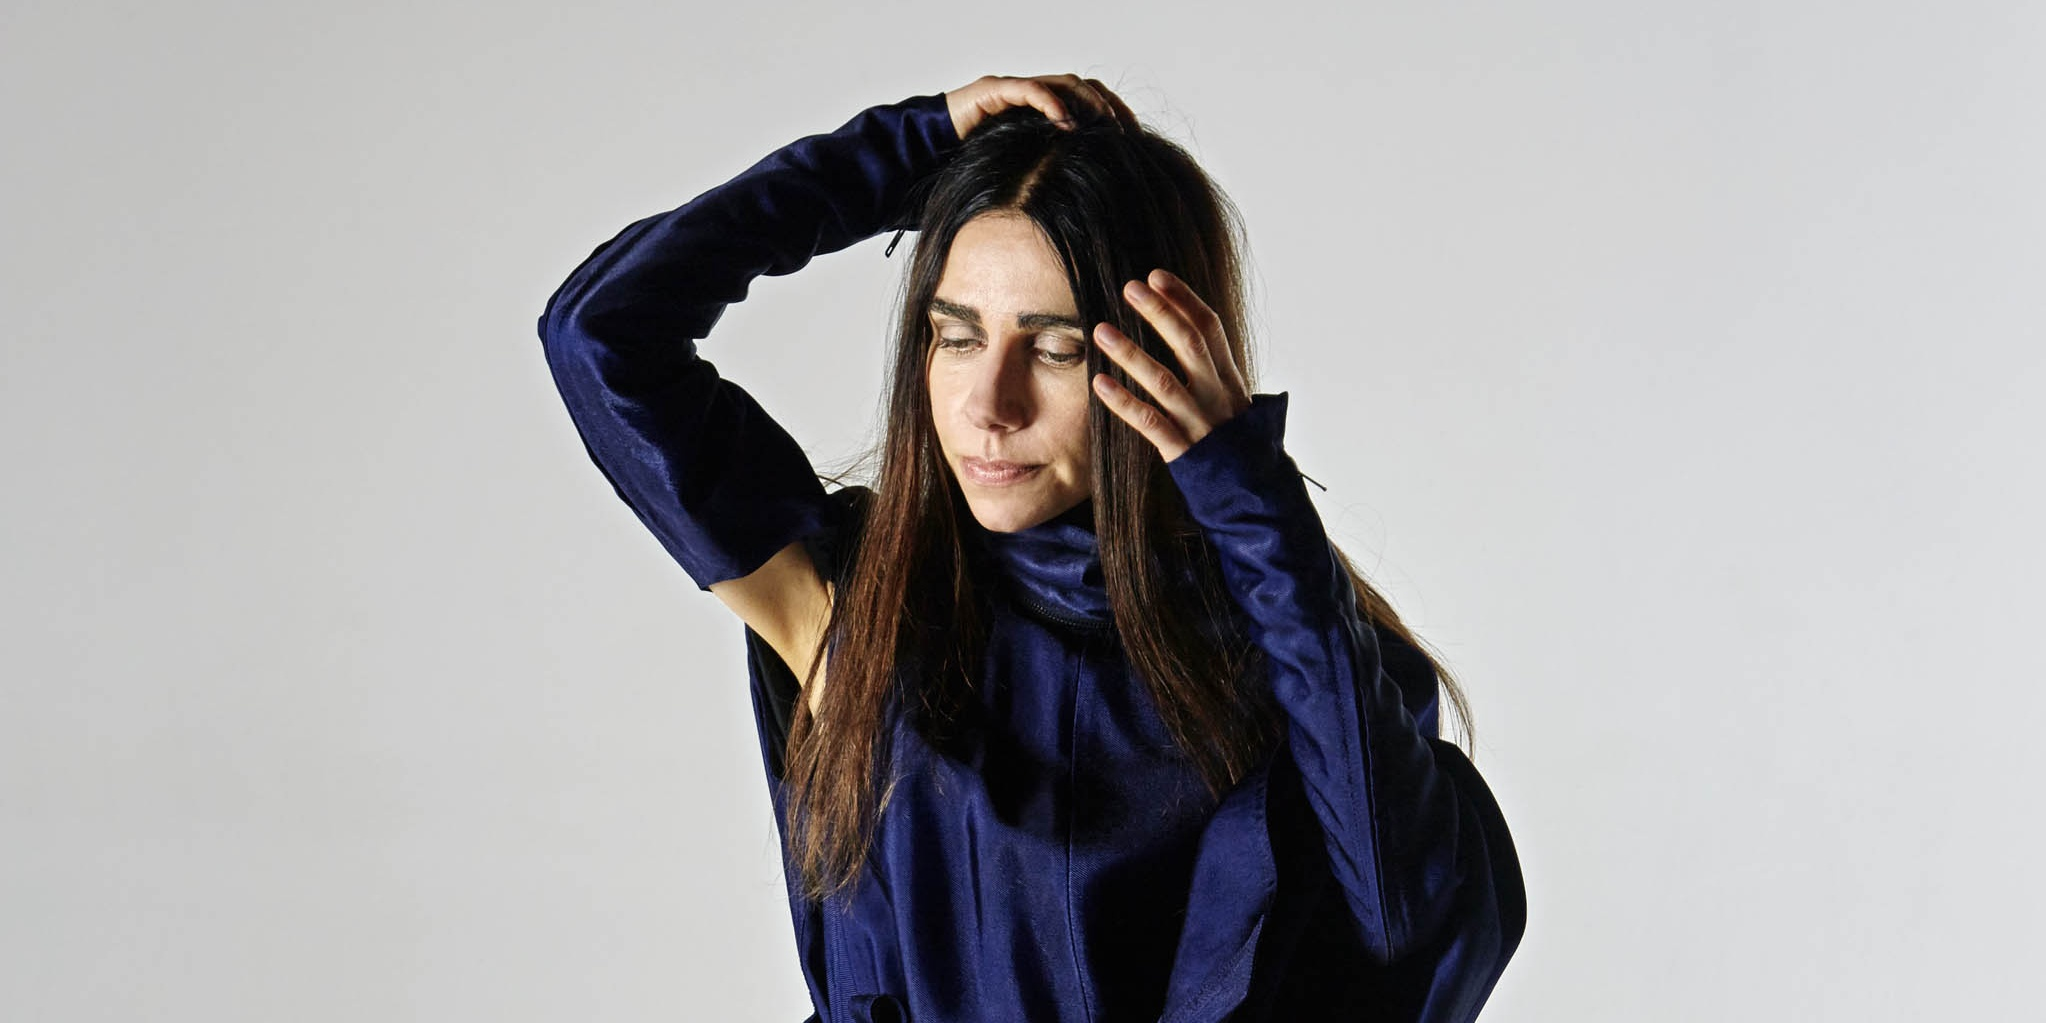 PJ Harvey will sign her new book of poetry before her show in Singapore